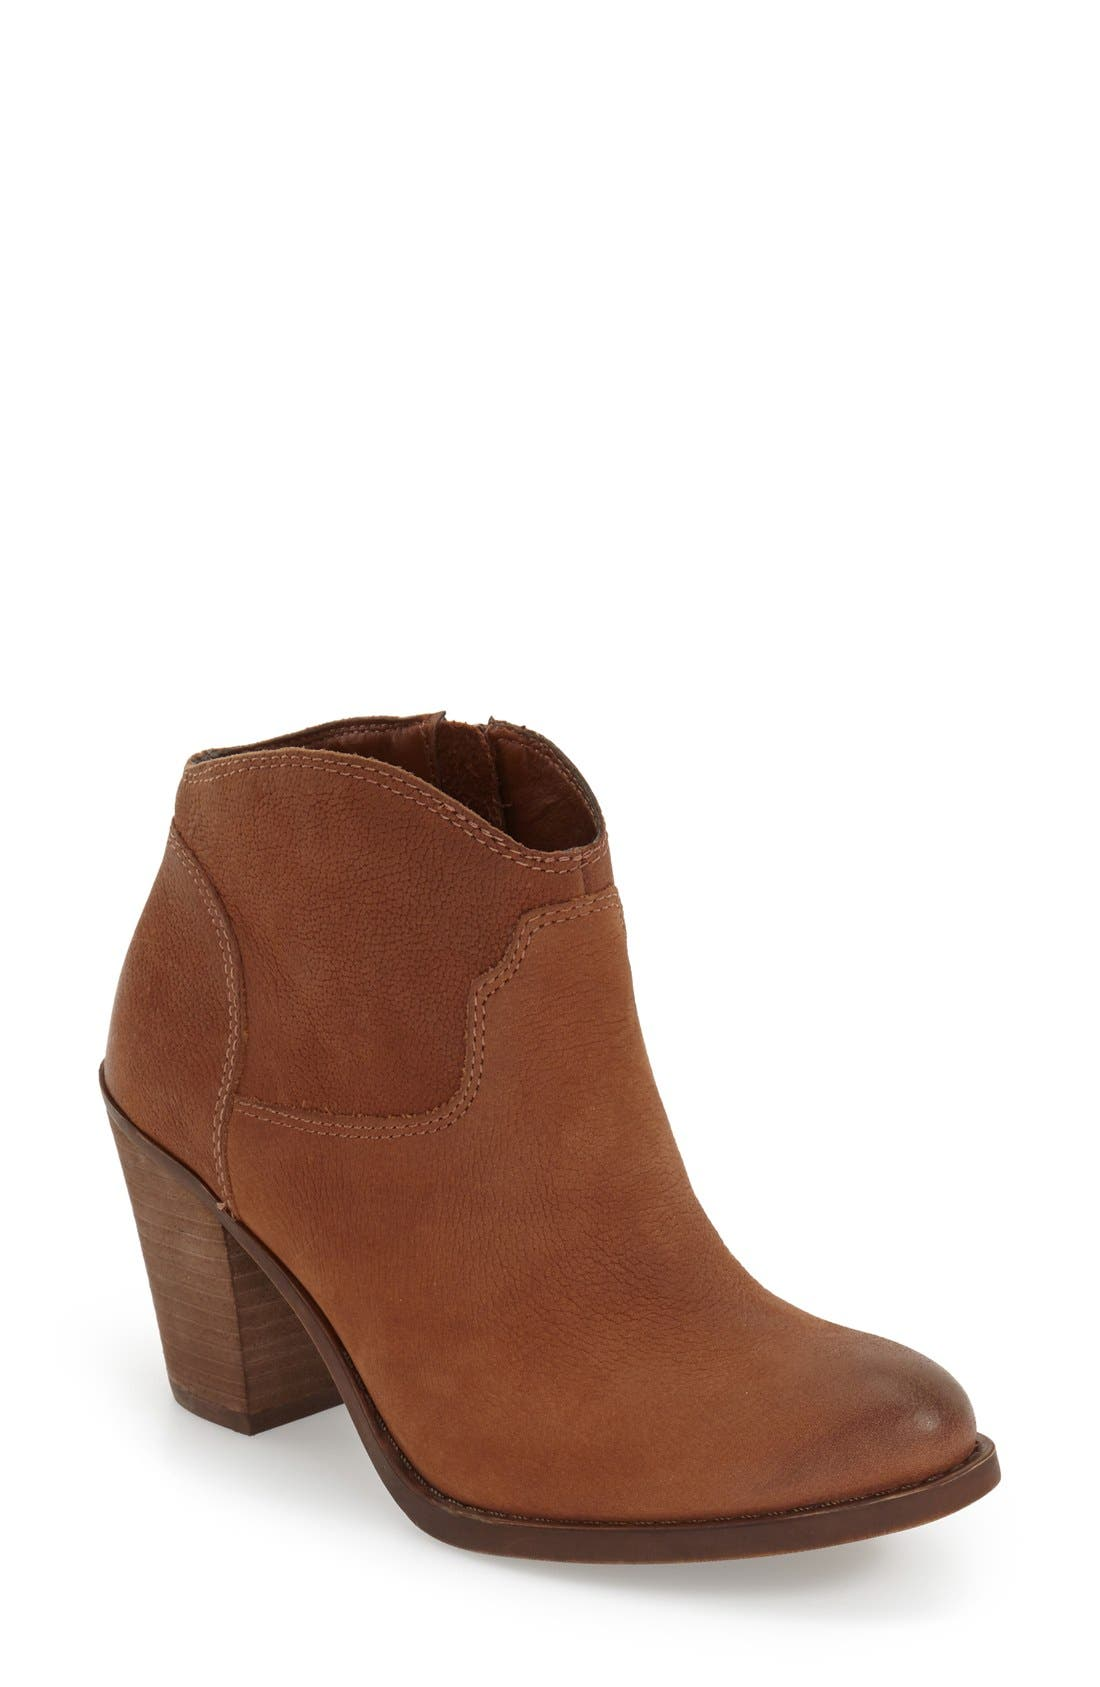 'Eller' Bootie,                         Main,                         color, Toffee Leather